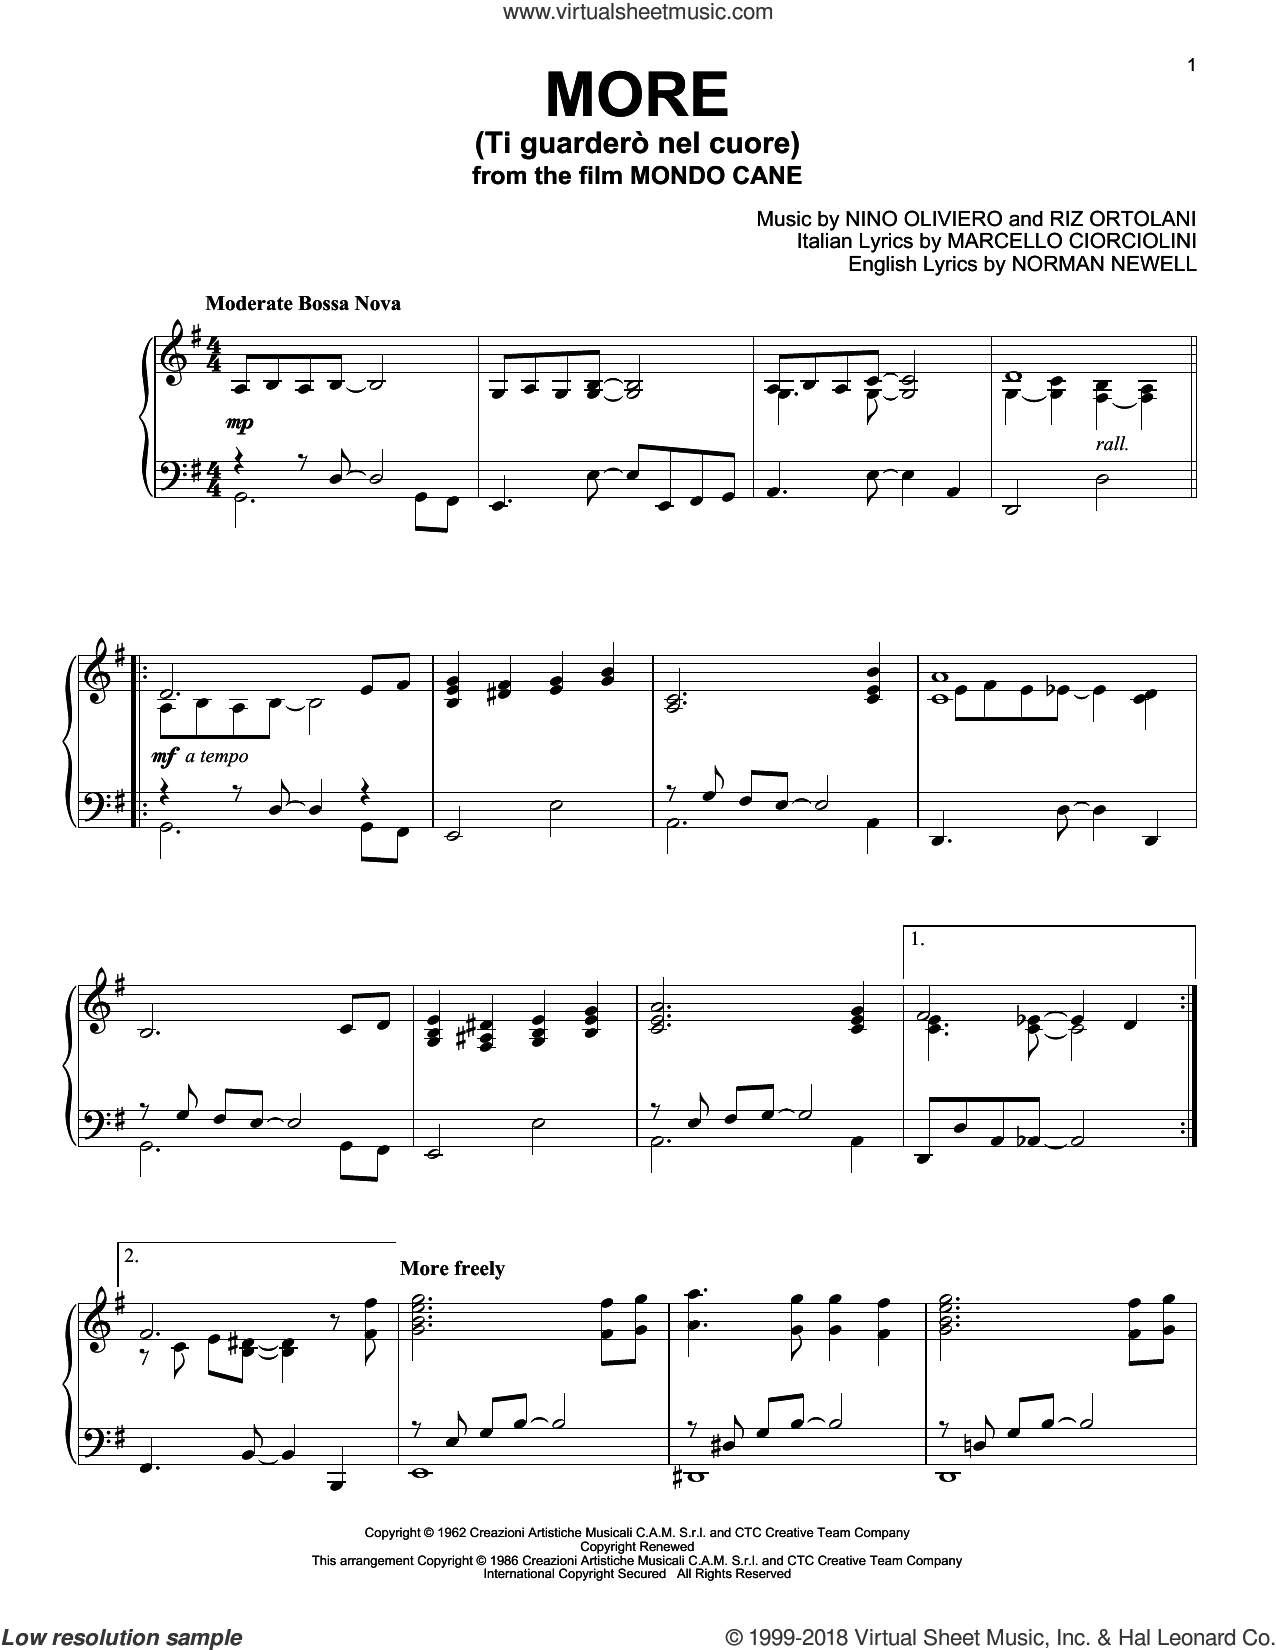 More (Ti Guardero Nel Cuore) sheet music for piano solo by Marcello Ciorciolini, Nino Oliviero, Norman Newell and Riz Ortolani, intermediate skill level